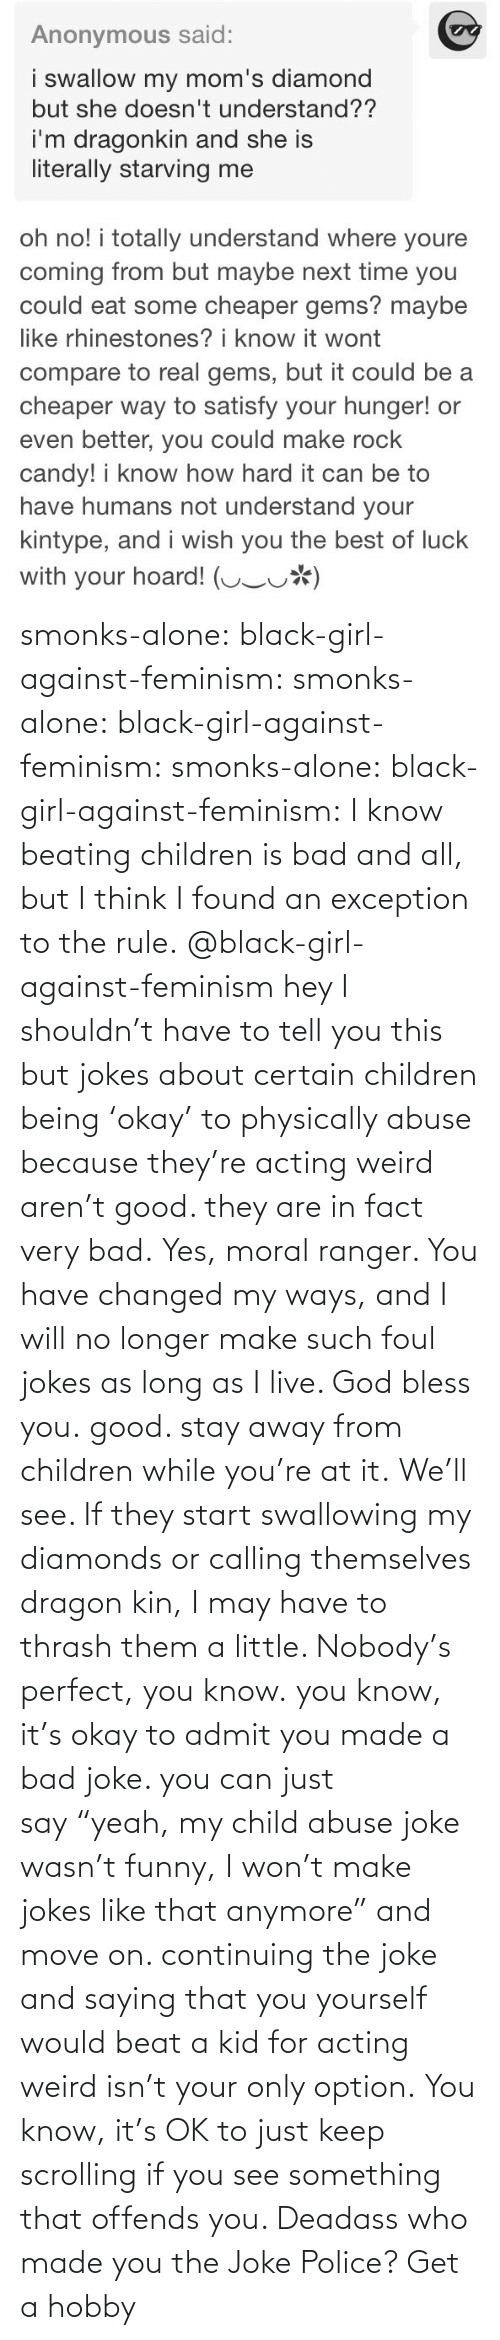 "I Won: smonks-alone:  black-girl-against-feminism: smonks-alone:  black-girl-against-feminism:  smonks-alone:  black-girl-against-feminism: I know beating children is bad and all, but I think I found an exception to the rule. @black-girl-against-feminism hey I shouldn't have to tell you this but jokes about certain children being 'okay' to physically abuse because they're acting weird aren't good. they are in fact very bad.  Yes, moral ranger. You have changed my ways, and I will no longer make such foul jokes as long as I live. God bless you.  good. stay away from children while you're at it.  We'll see. If they start swallowing my diamonds or calling themselves dragon kin, I may have to thrash them a little. Nobody's perfect, you know.  you know, it's okay to admit you made a bad joke. you can just say ""yeah, my child abuse joke wasn't funny, I won't make jokes like that anymore"" and move on. continuing the joke and saying that you yourself would beat a kid for acting weird isn't your only option.   You know, it's OK to just keep scrolling if you see something that offends you. Deadass who made you the Joke Police? Get a hobby"